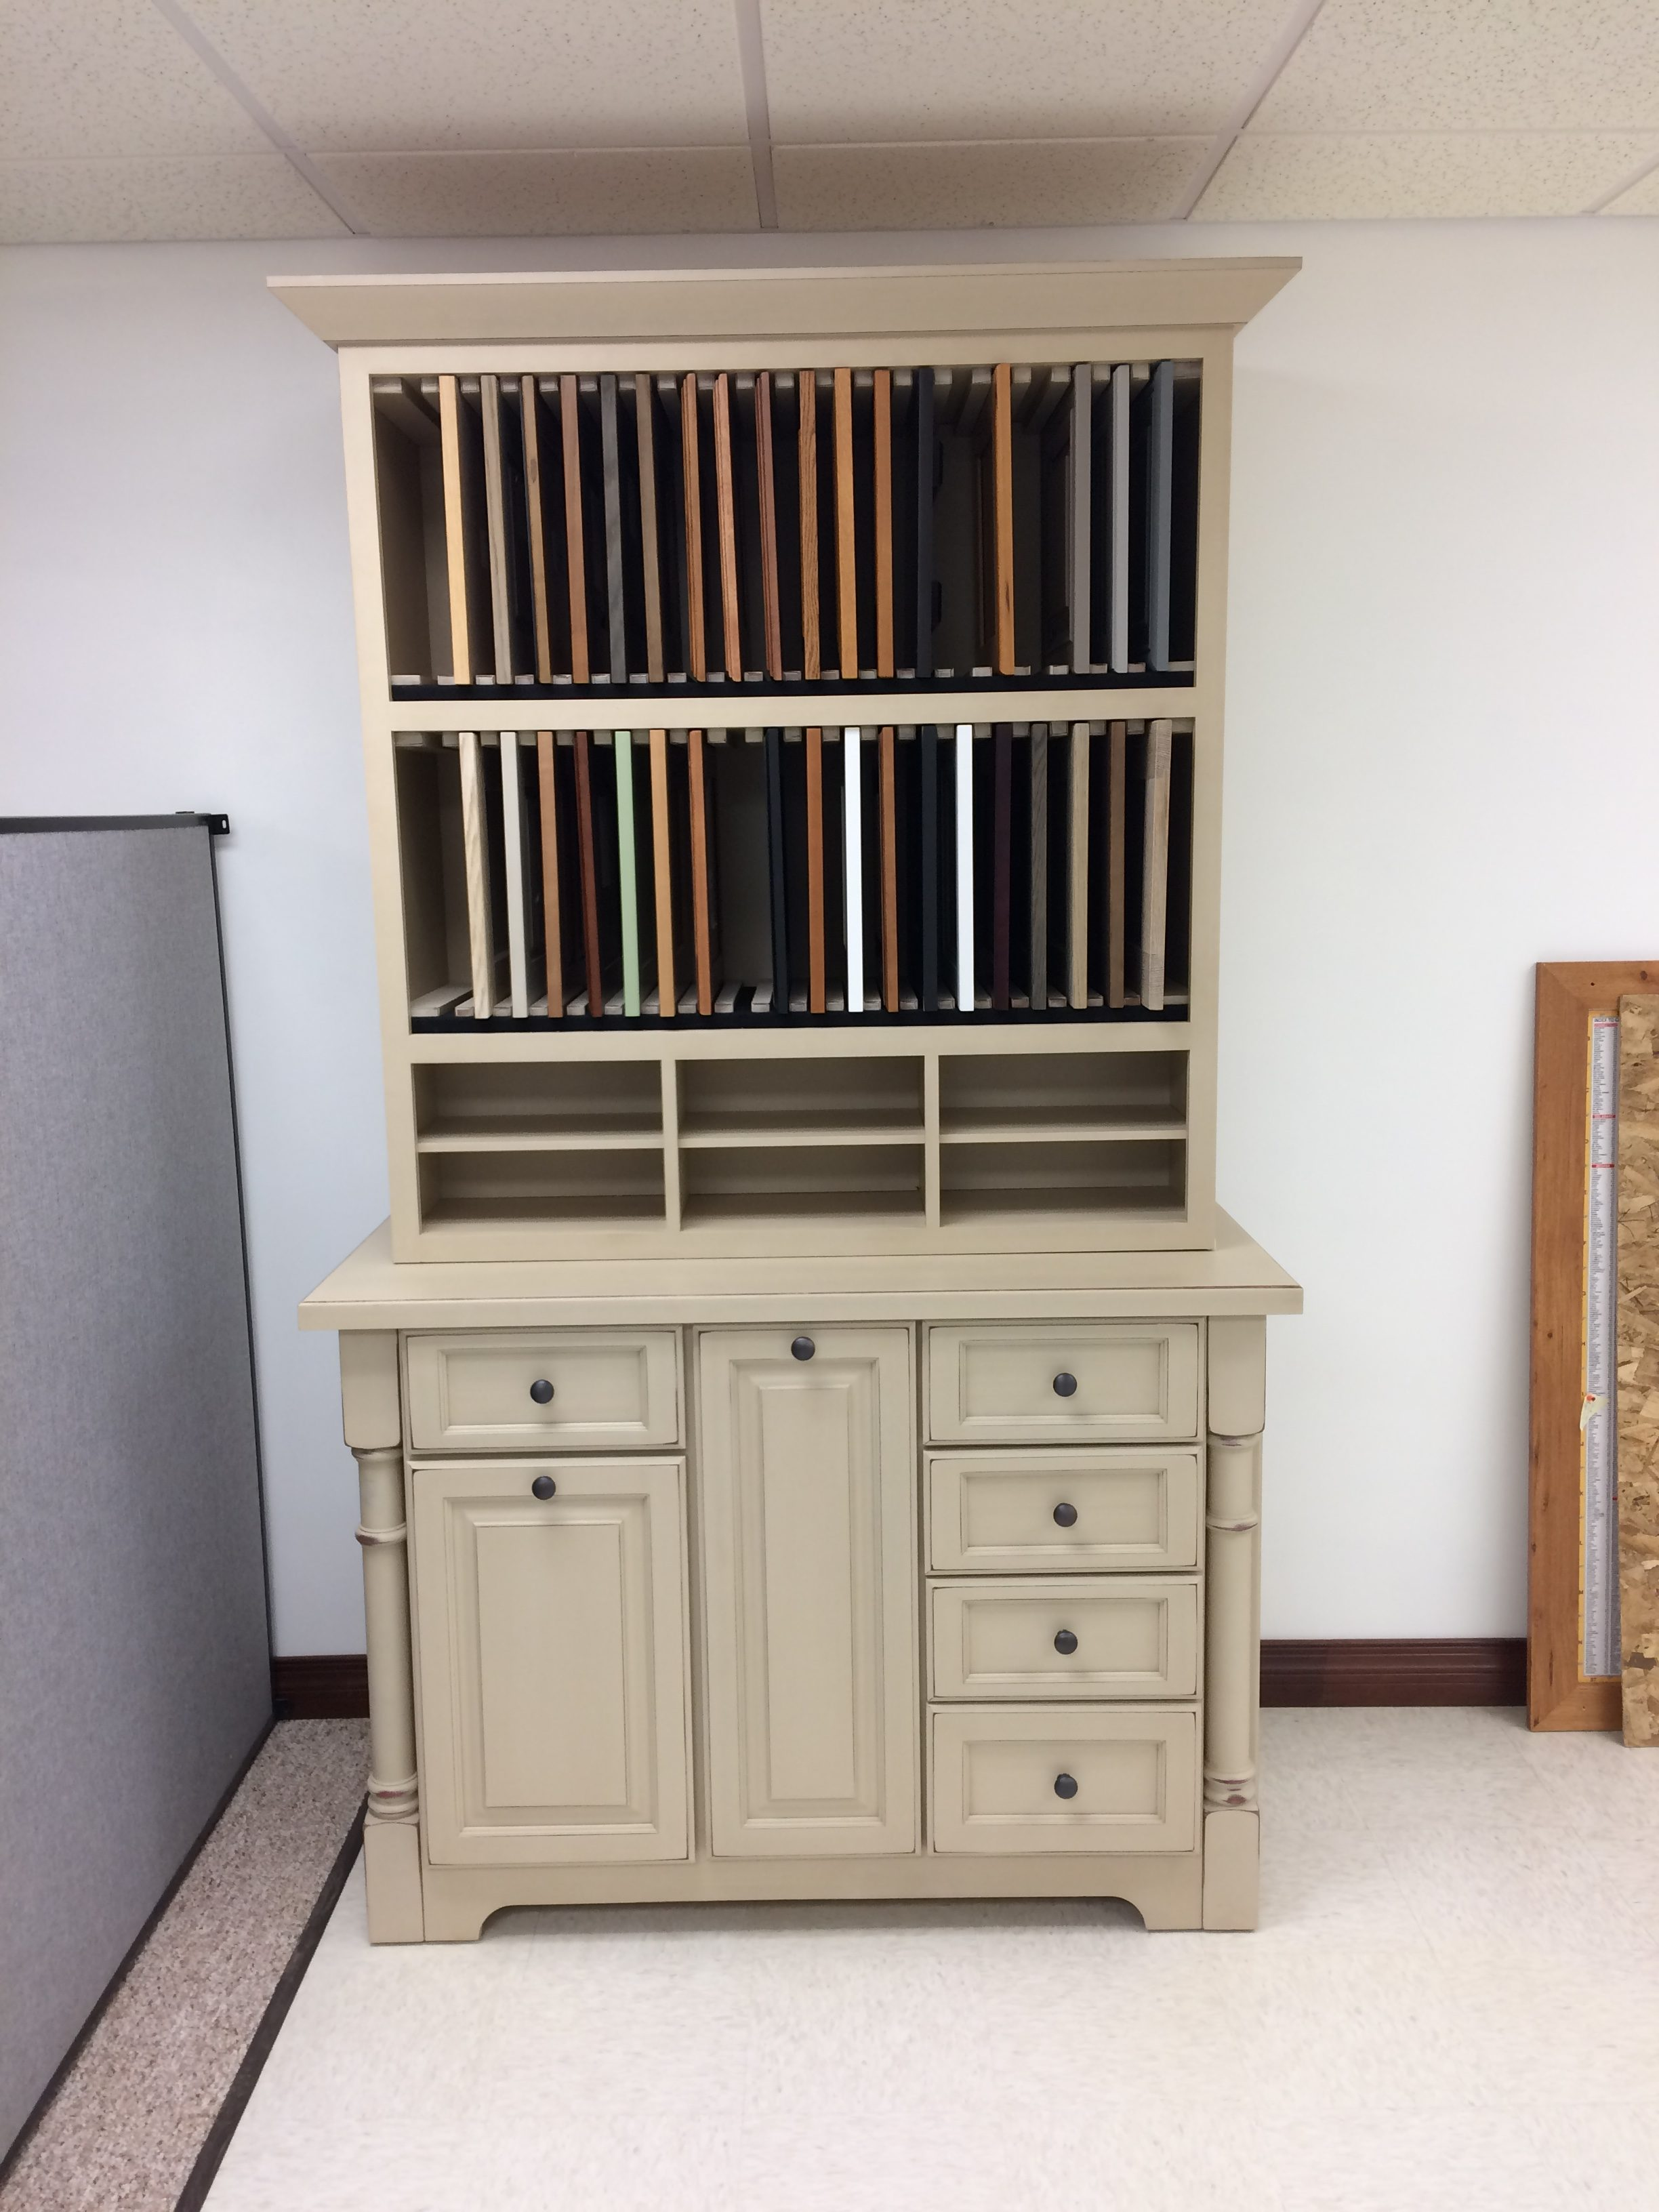 ... Brighton Cabinetry. This Item Is For Dealers Only, To Showcase Some  Accessories, Doors, And Finishes We Offer. If You Would Like To Know More  About ...